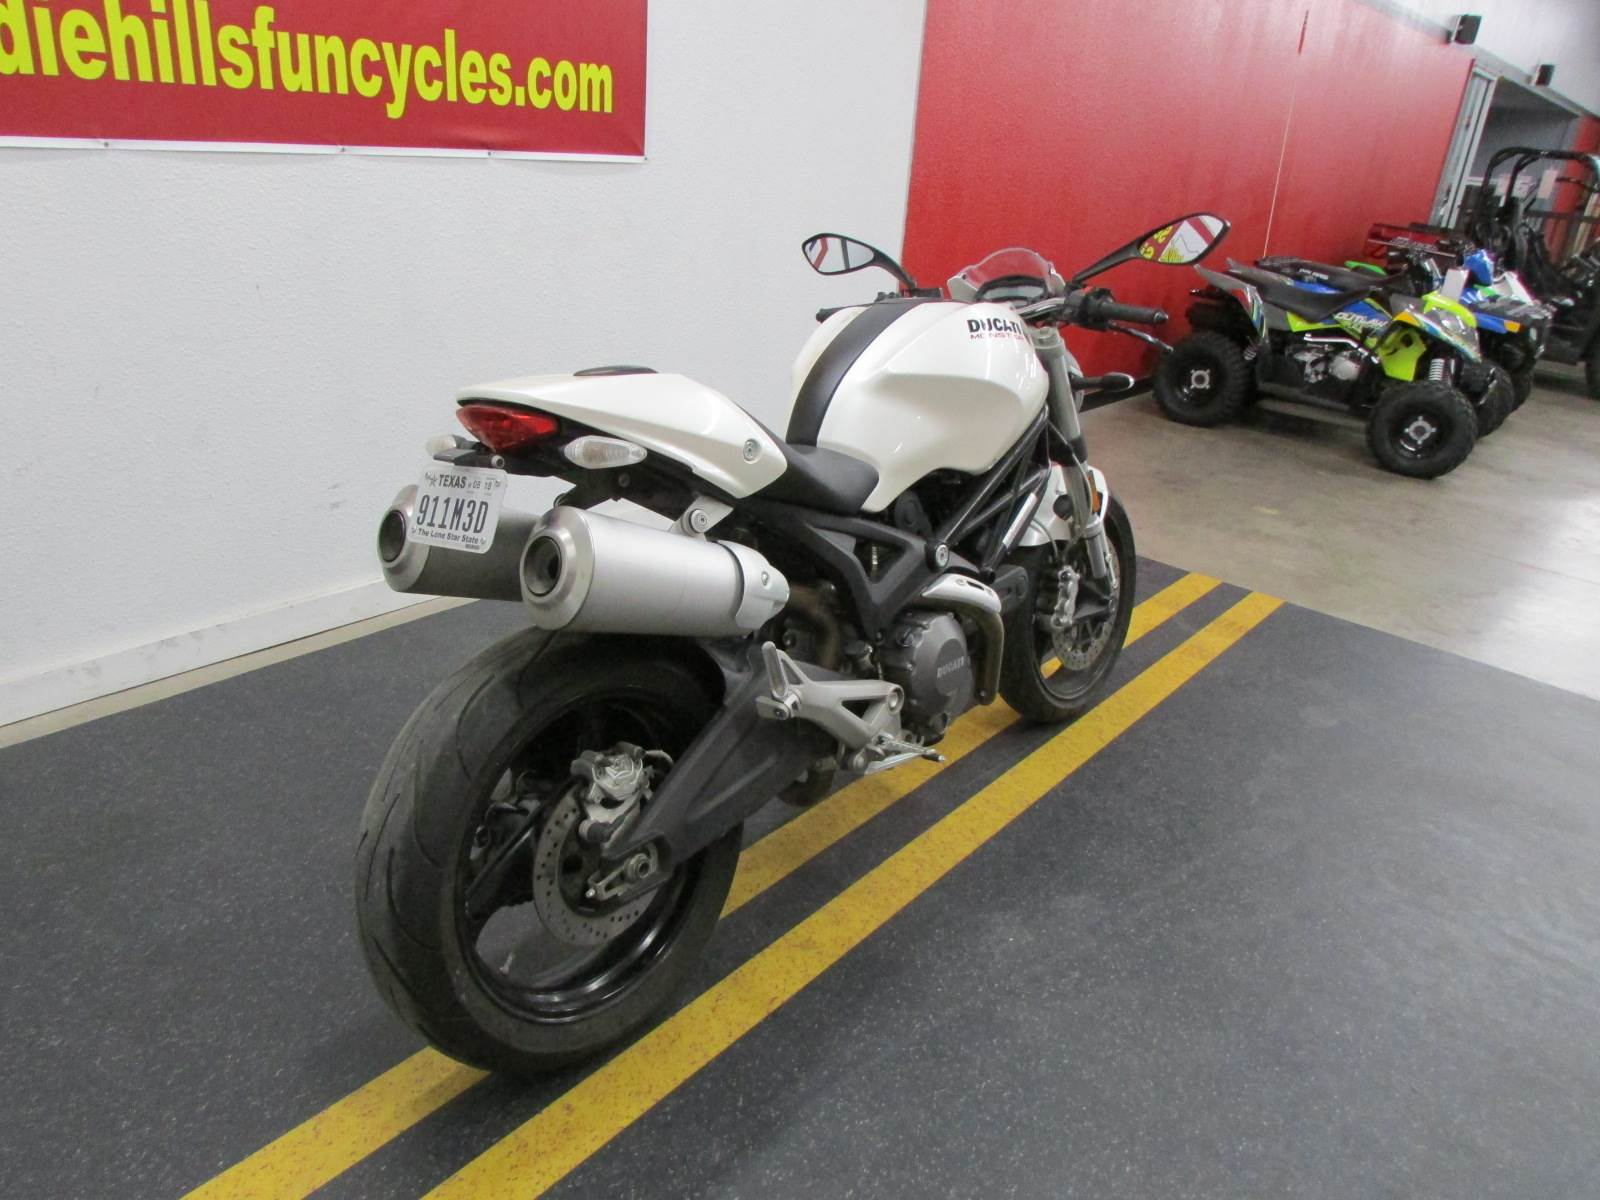 2009 Ducati Monster 696 in Wichita Falls, Texas